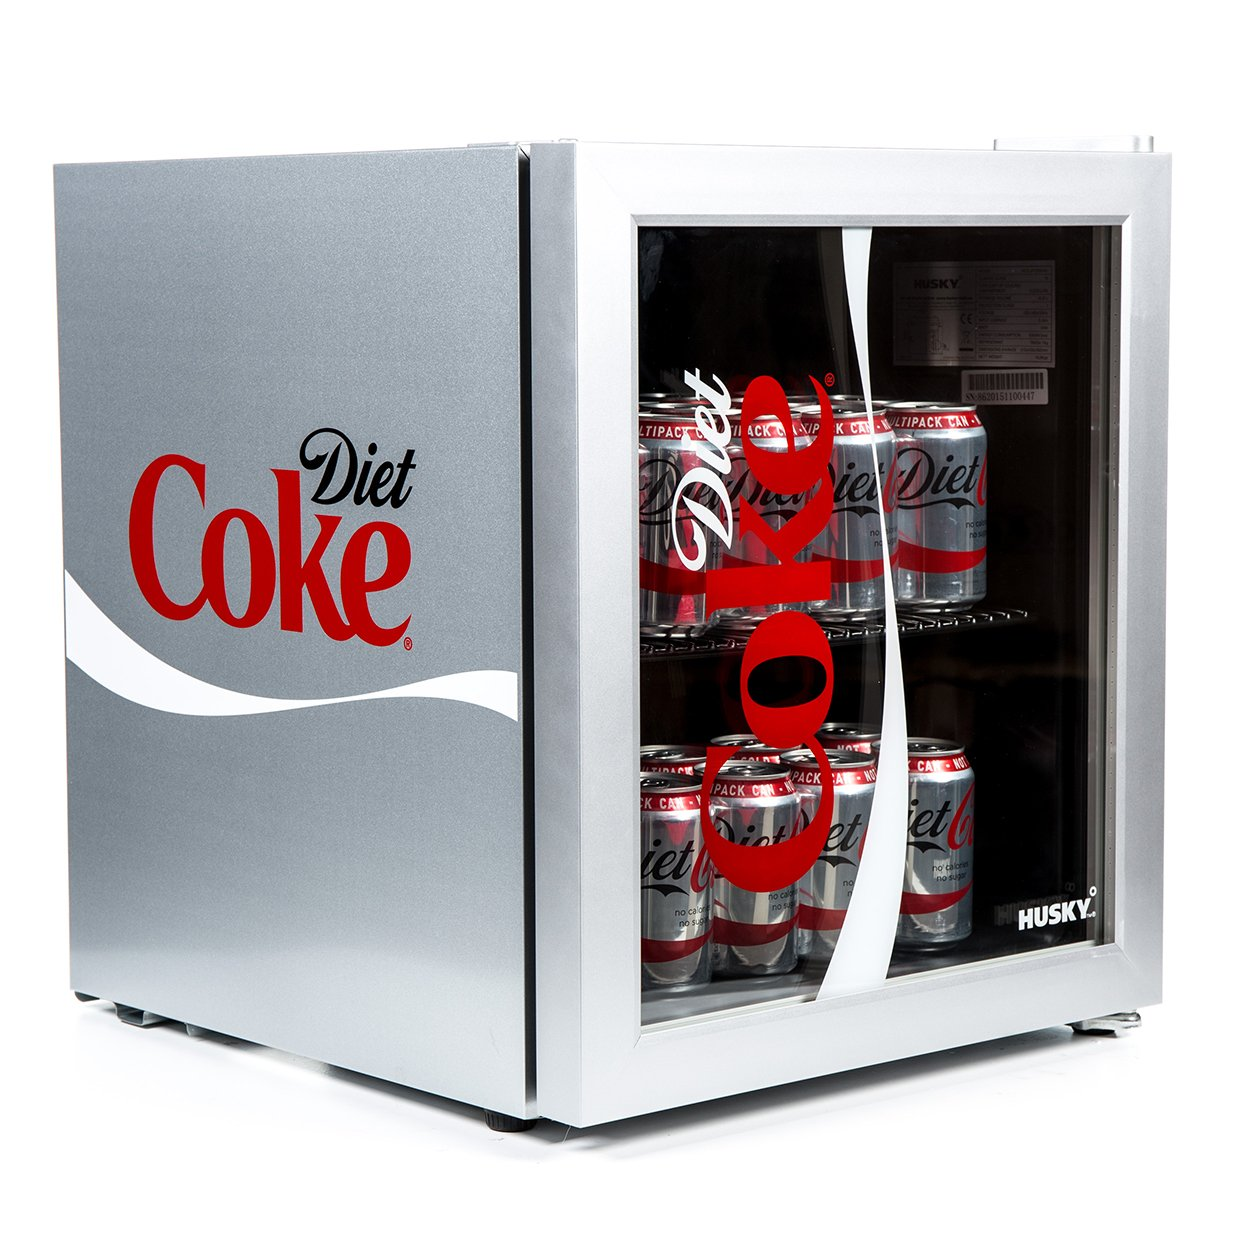 Husky HUS-HY209-HU Diet Coke Design Glass Door - [Energy Class A+]